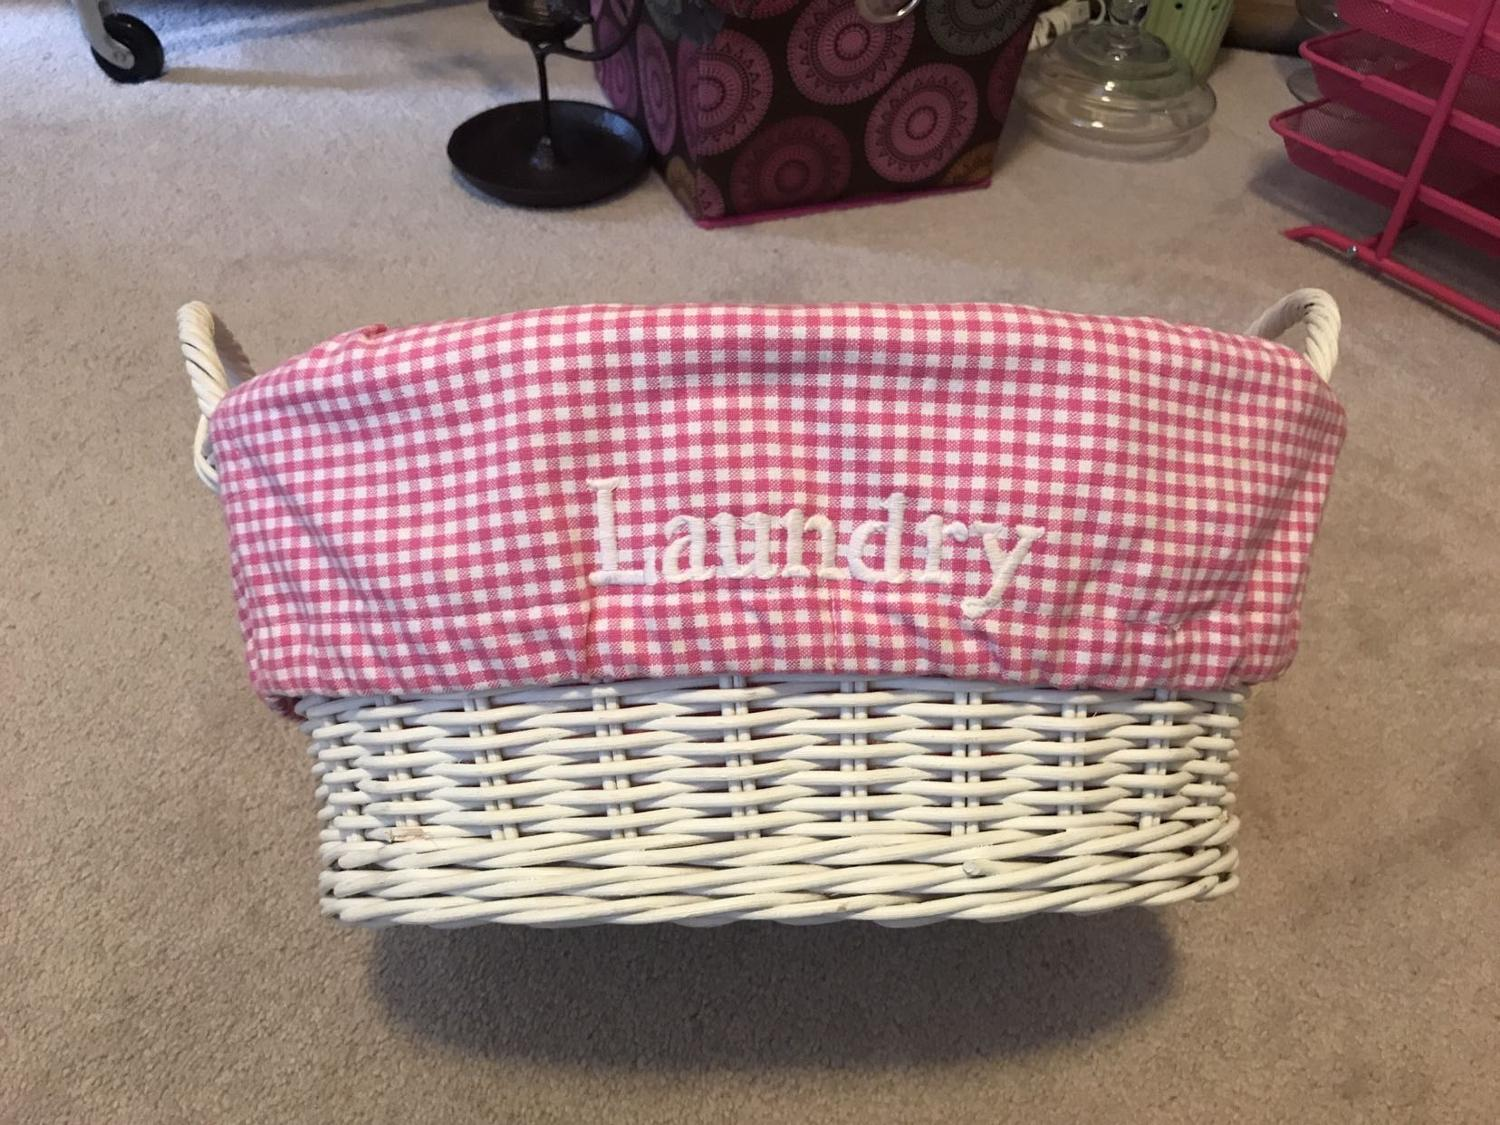 Best Pottery Barn Kids Laundry Basket For Sale In Maple